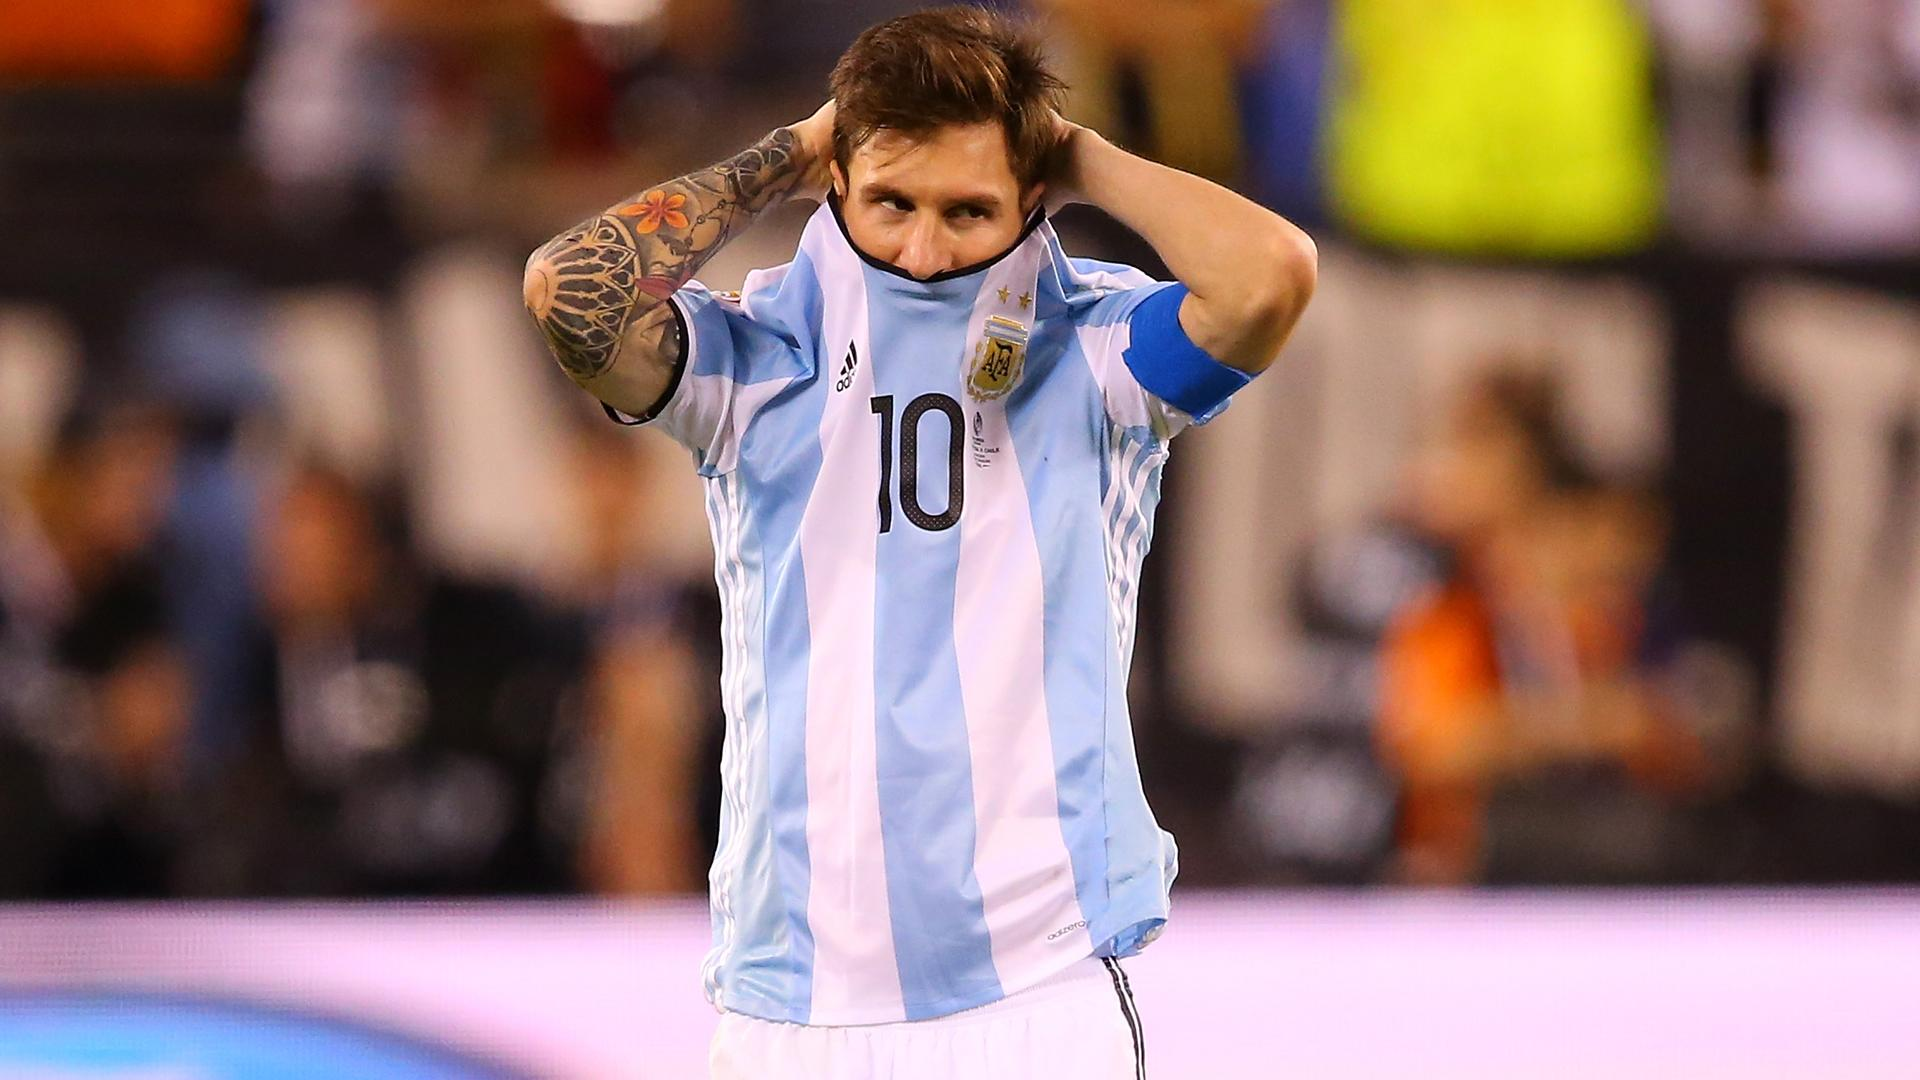 Messi set to retire from international football